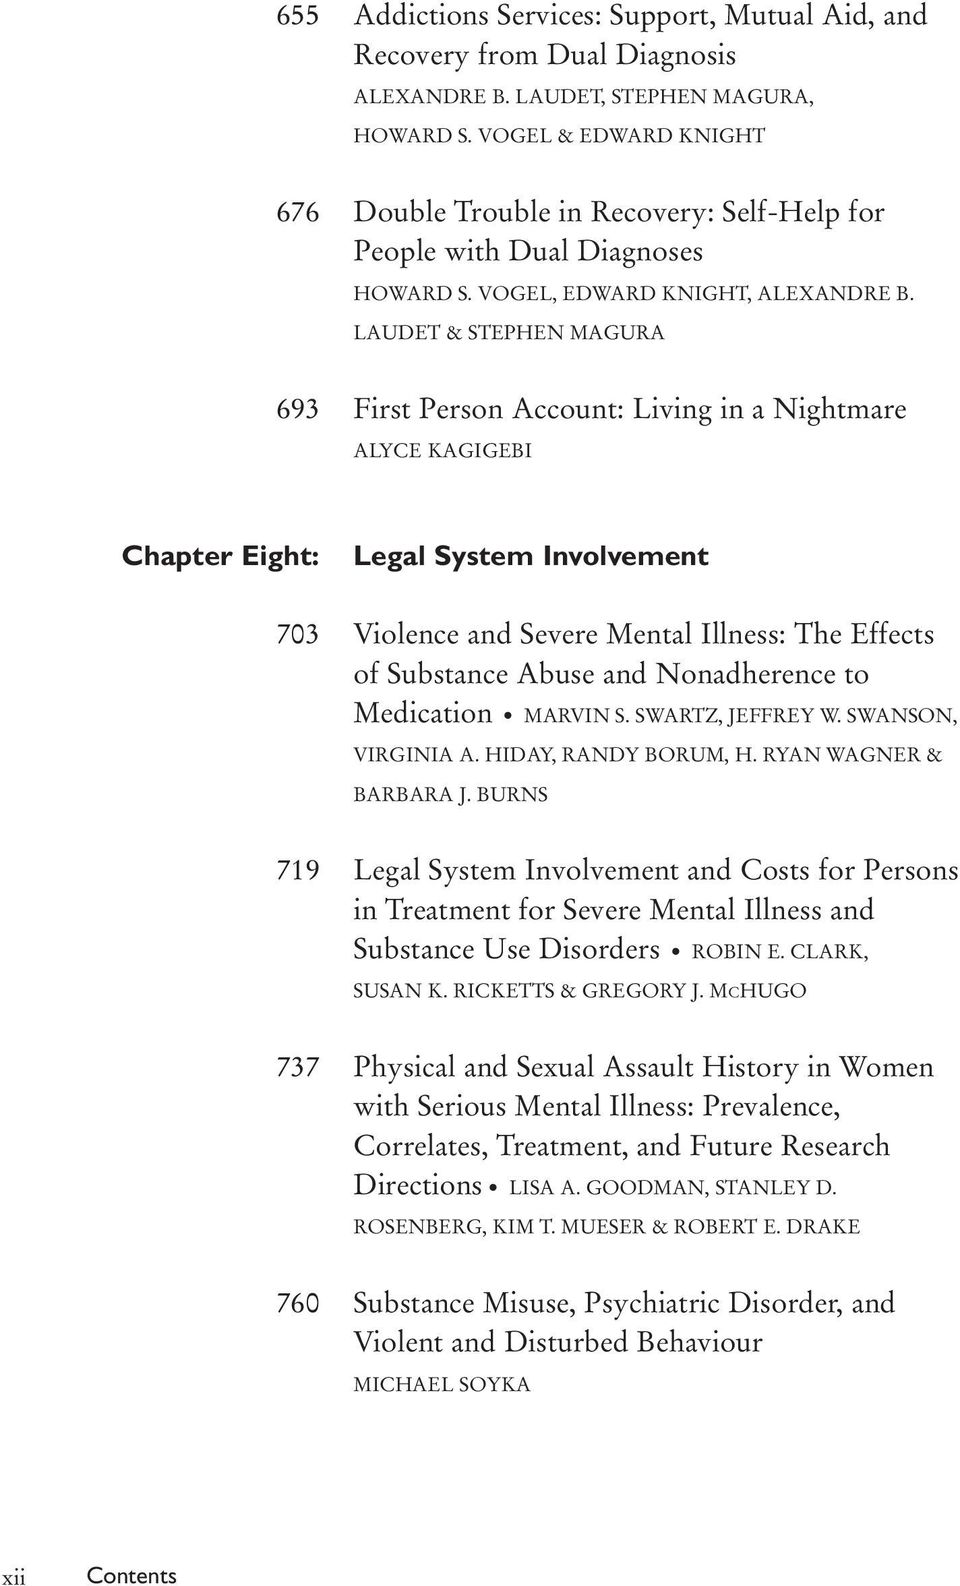 LAUDET & STEPHEN MAGURA 693 First Person Account: Living in a Nightmare ALYCE KAGIGEBI Chapter Eight: Legal System Involvement 703 Violence and Severe Mental Illness: The Effects of Substance Abuse